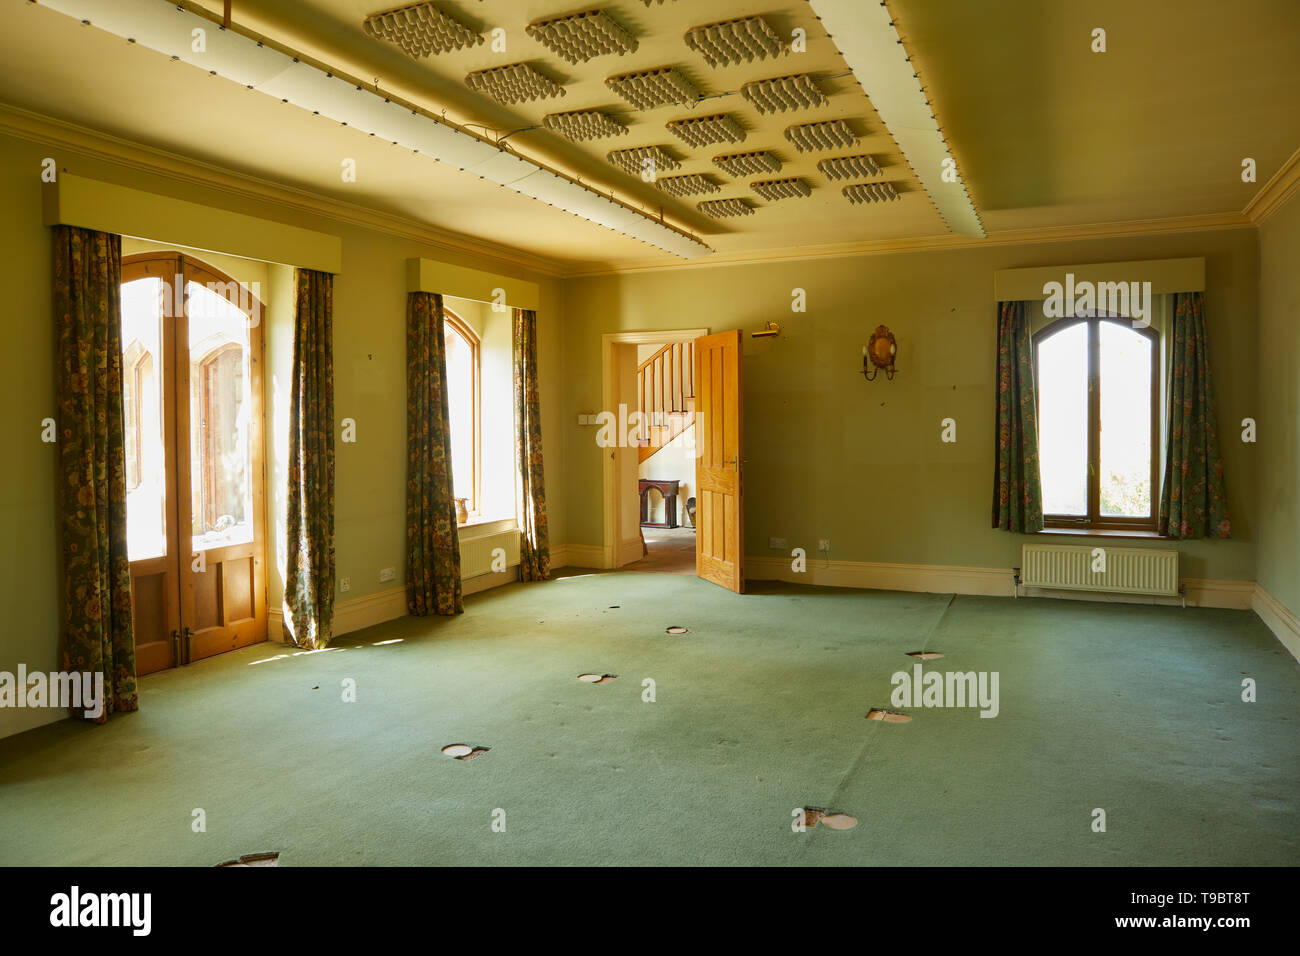 Once a billiard room a large carpeted empty area at the end of final house clearance. Sound deadening work to ceiling and flat lighting. Stock Photo